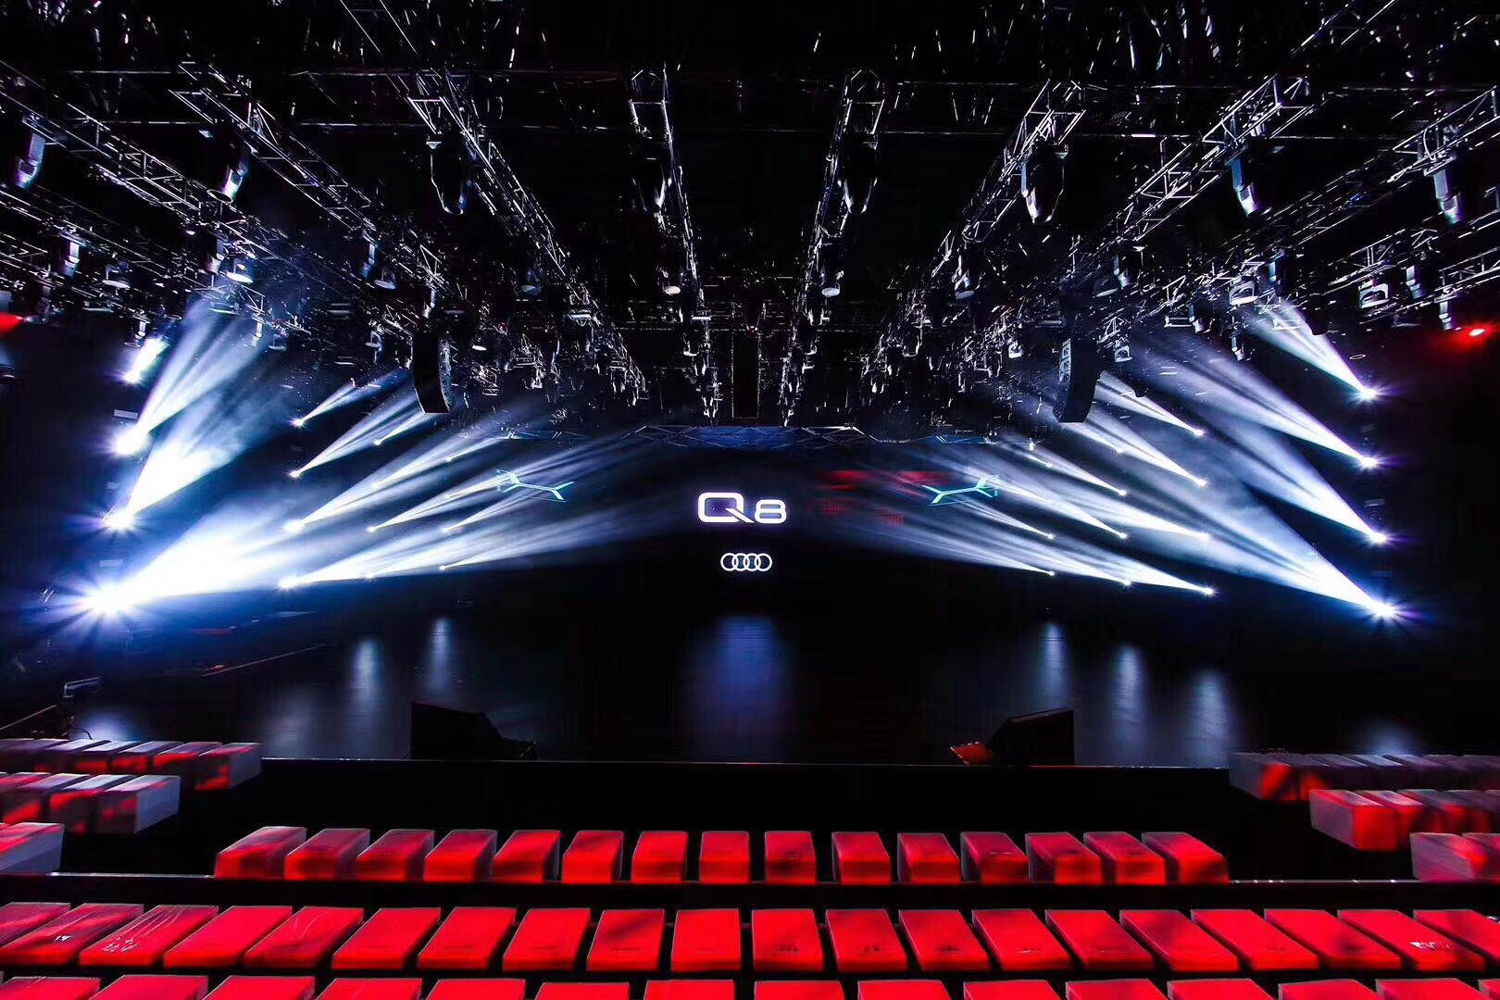 Audi Q8 Announcement Stage LED Screen and Event Lighting